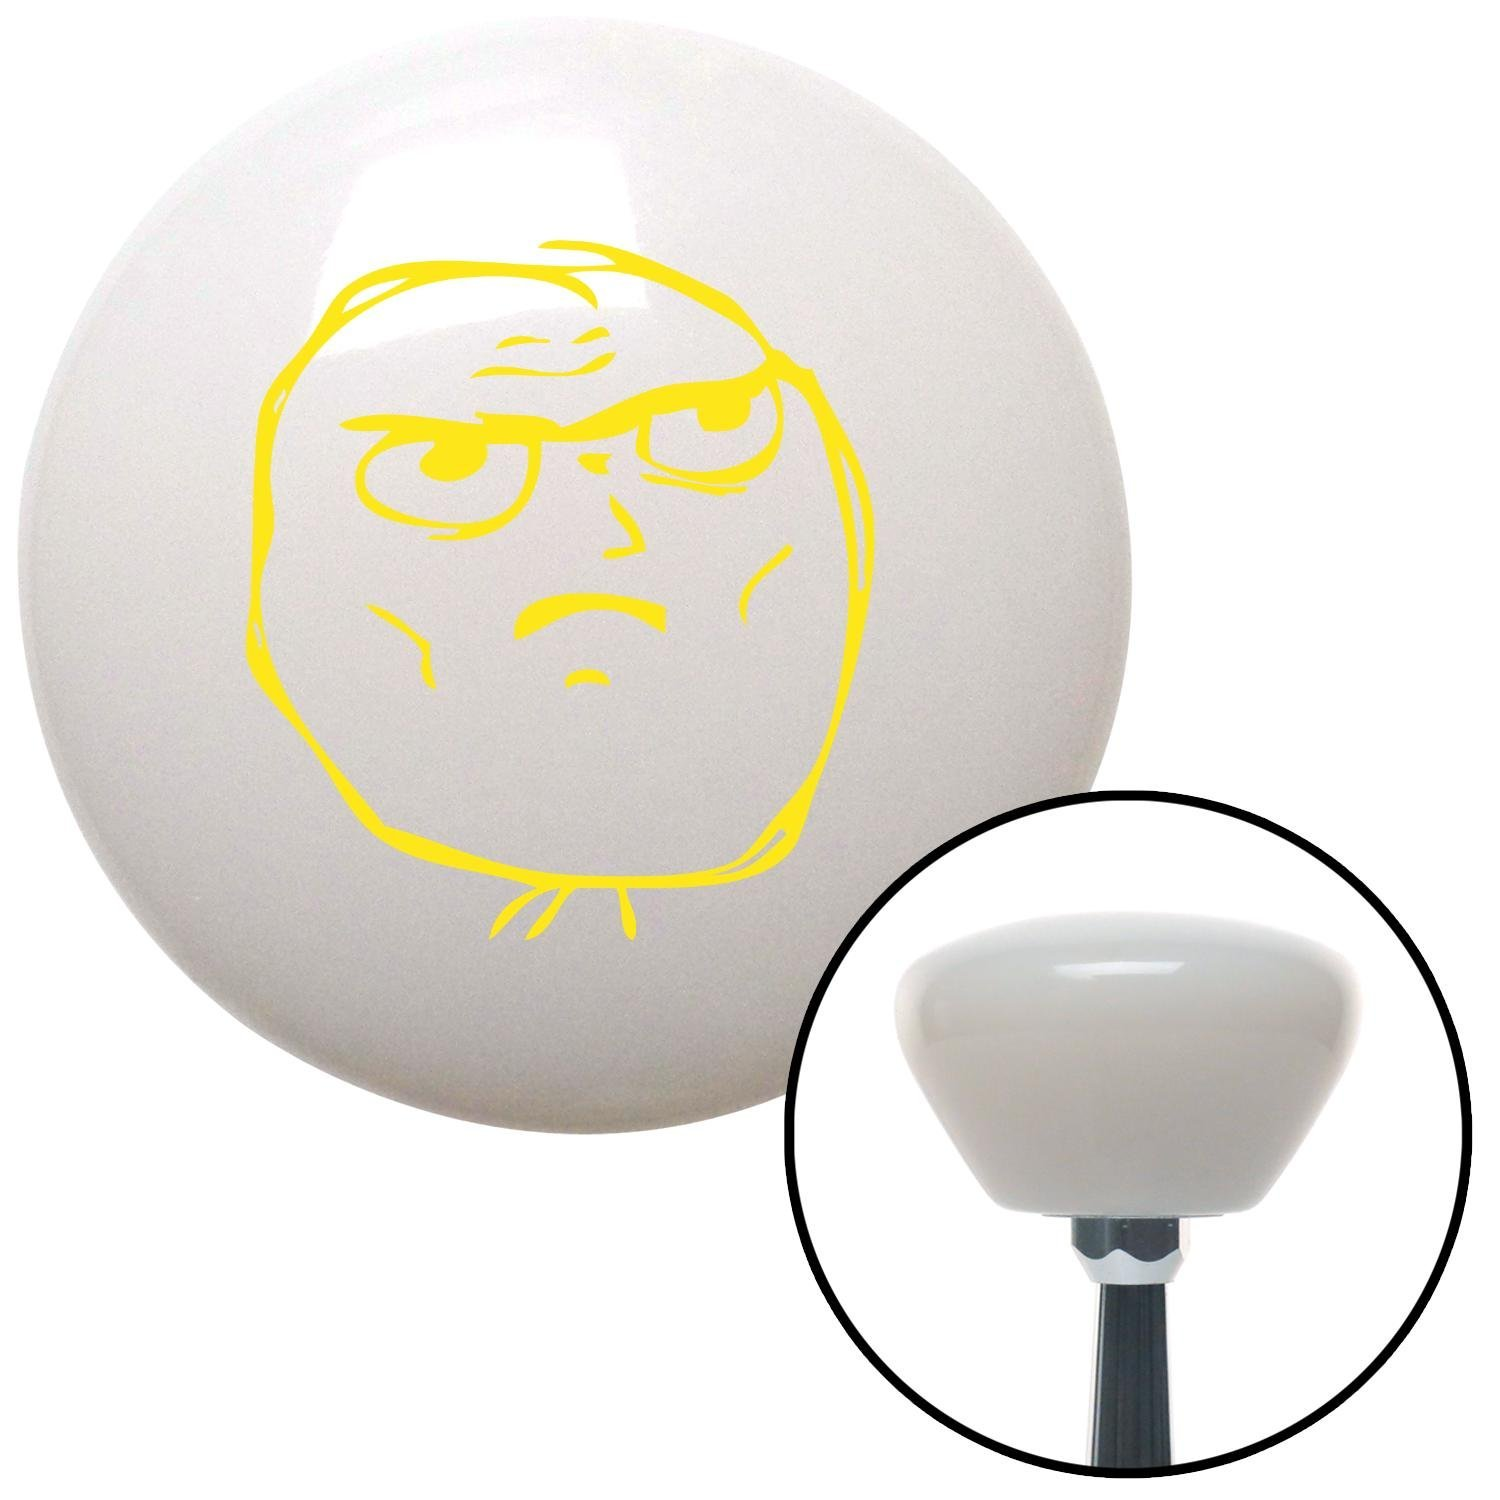 American Shifter 153872 White Retro Shift Knob with M16 x 1.5 Insert Yellow Determined